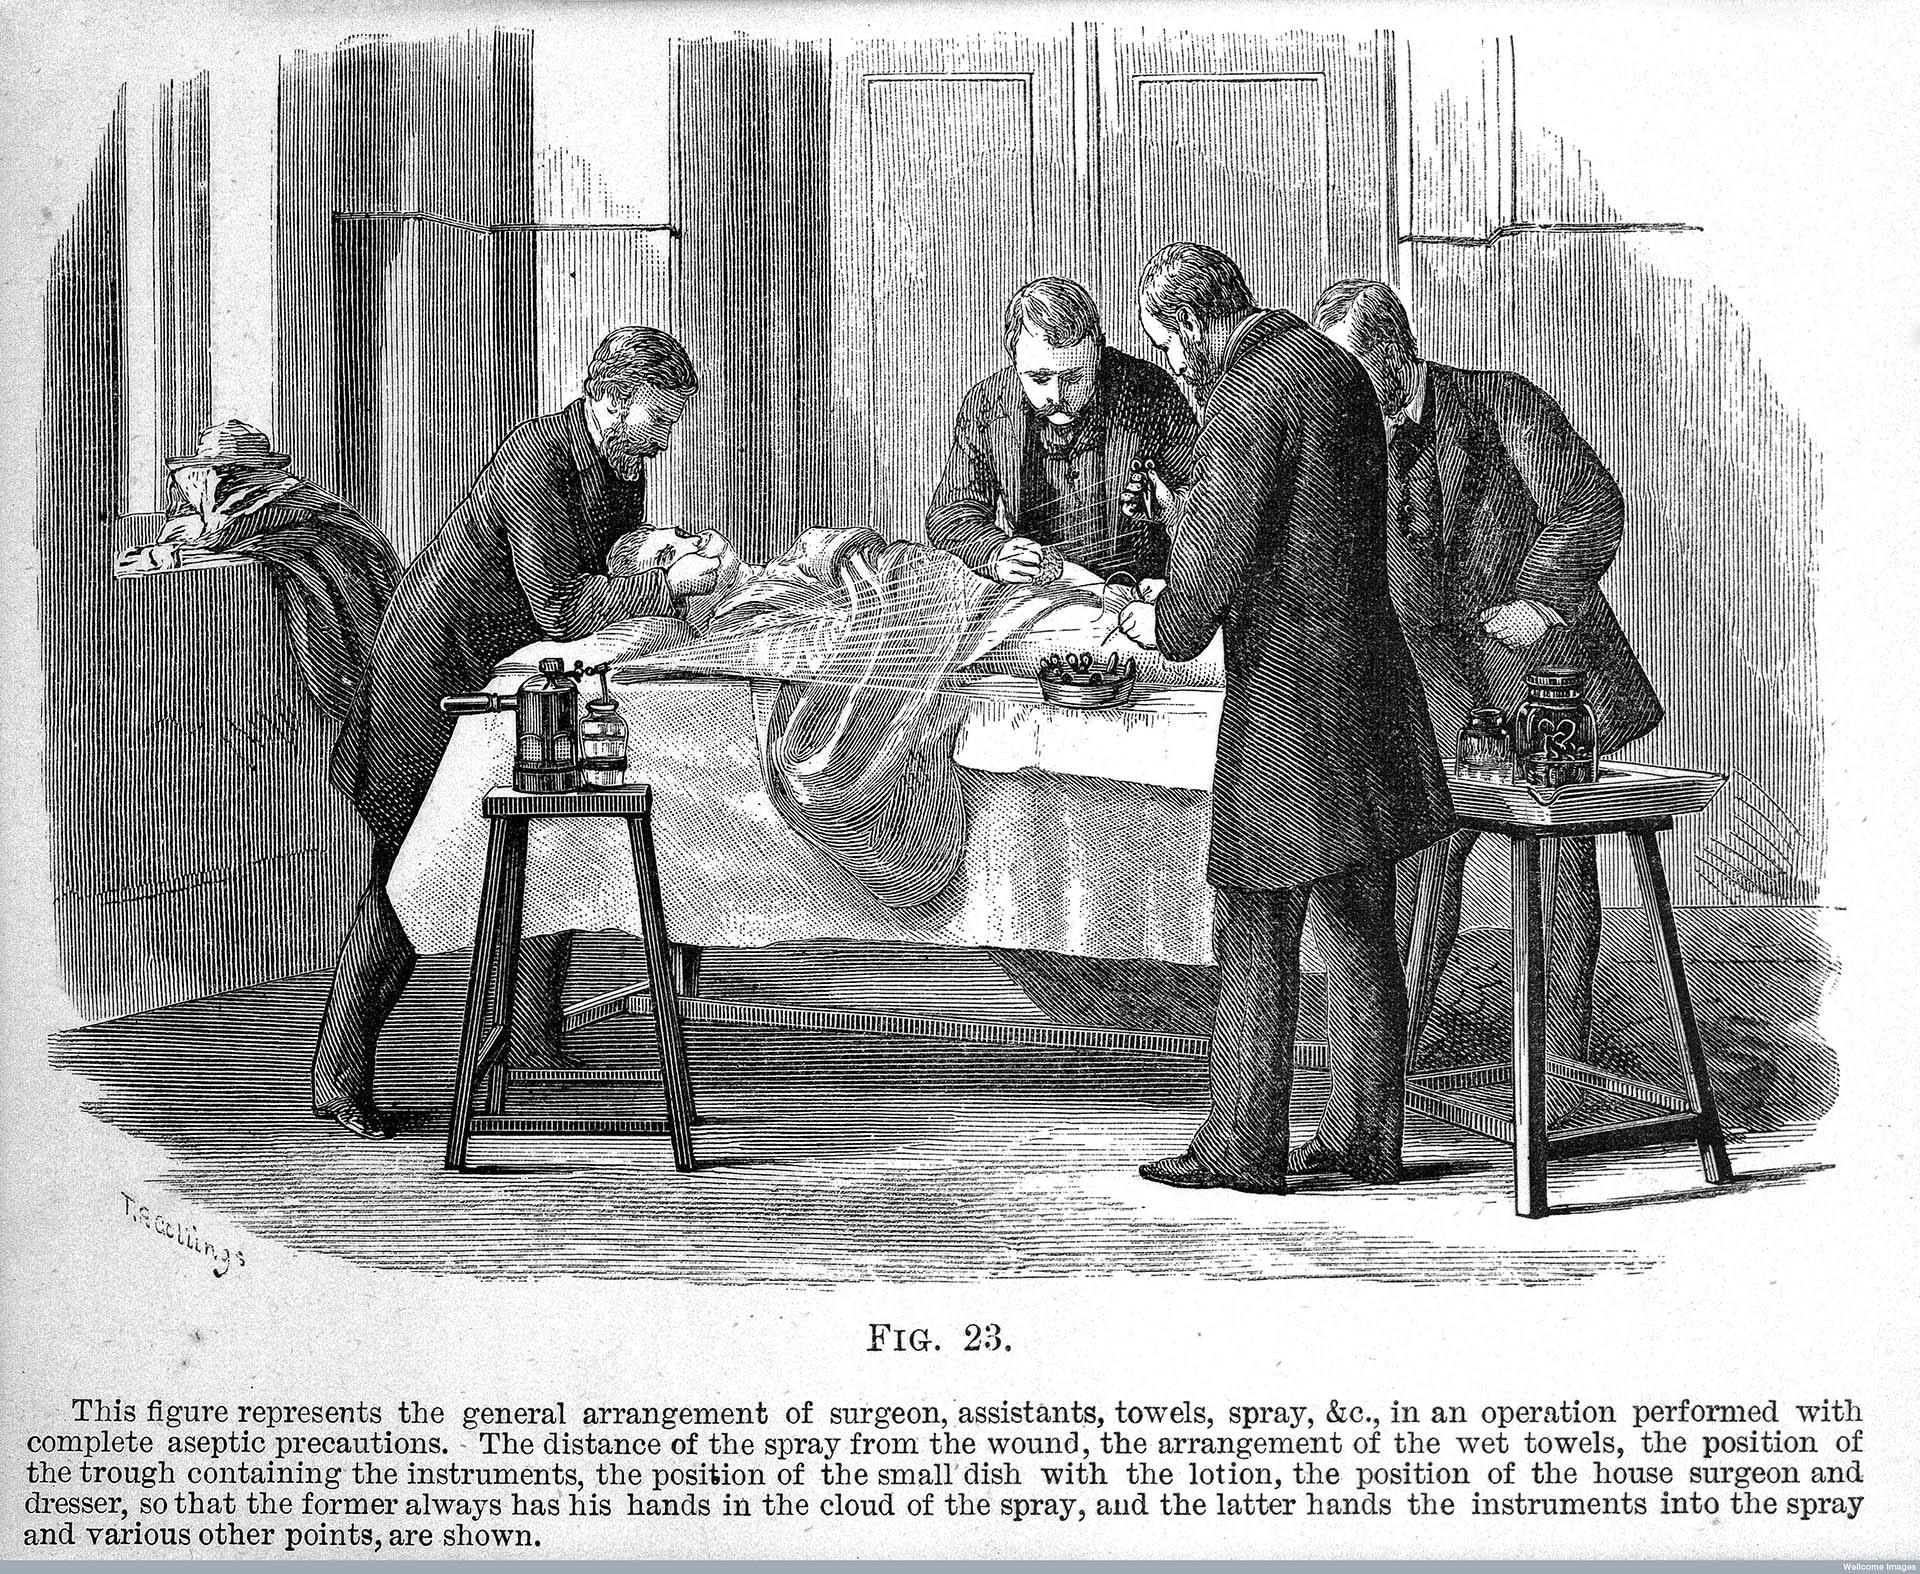 Use of the Lister carbolic spray, Antiseptic surgery, 1882.